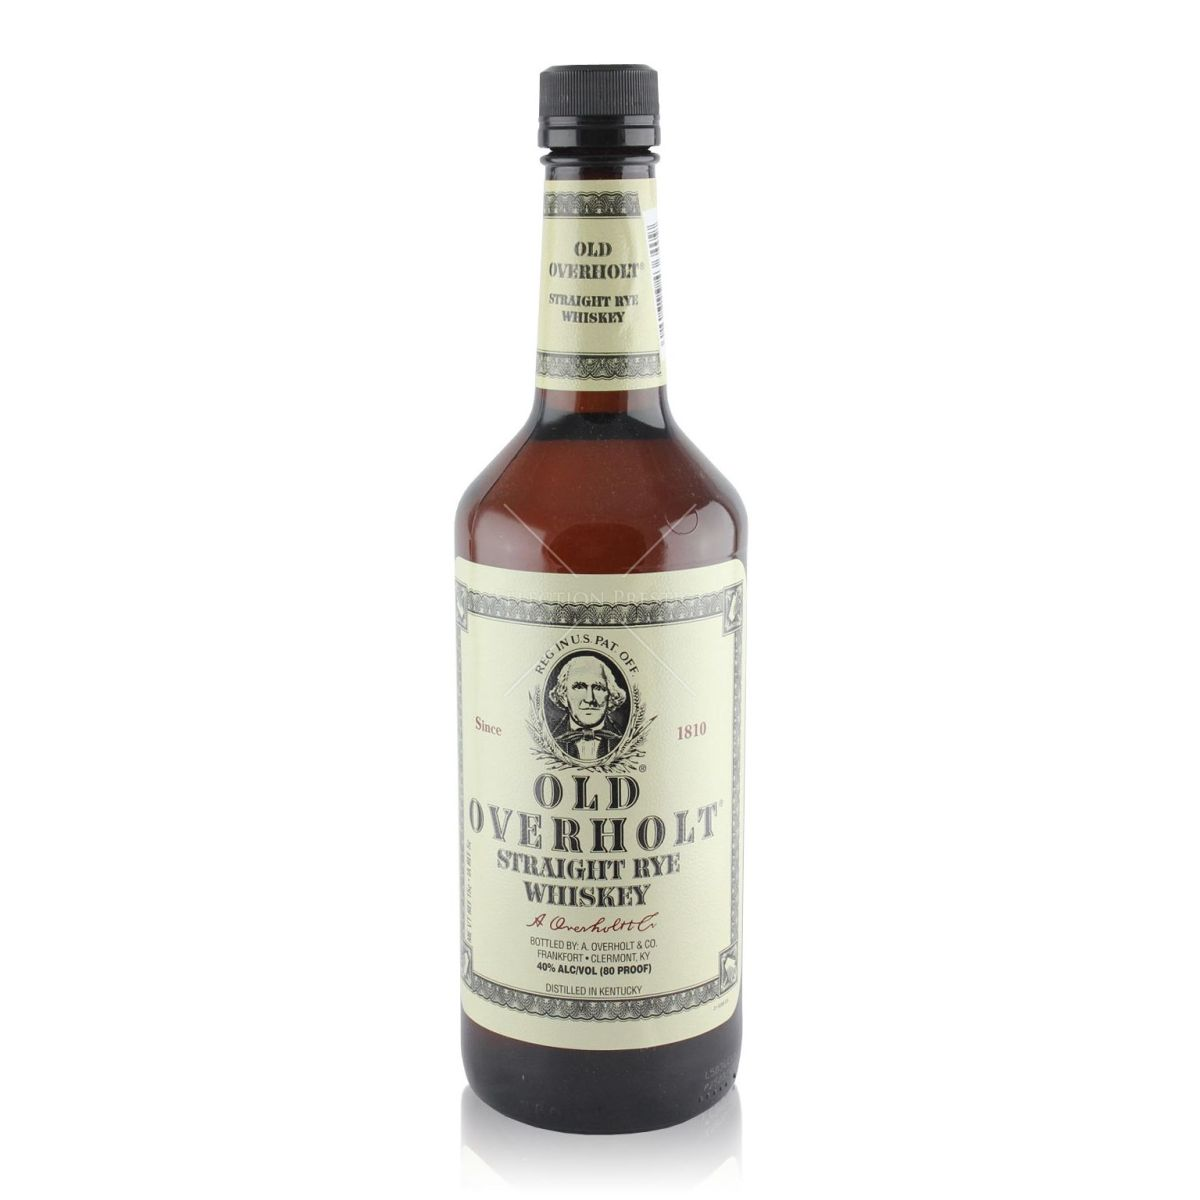 In Praise of Well Liquor #2 Old Overholt Rye